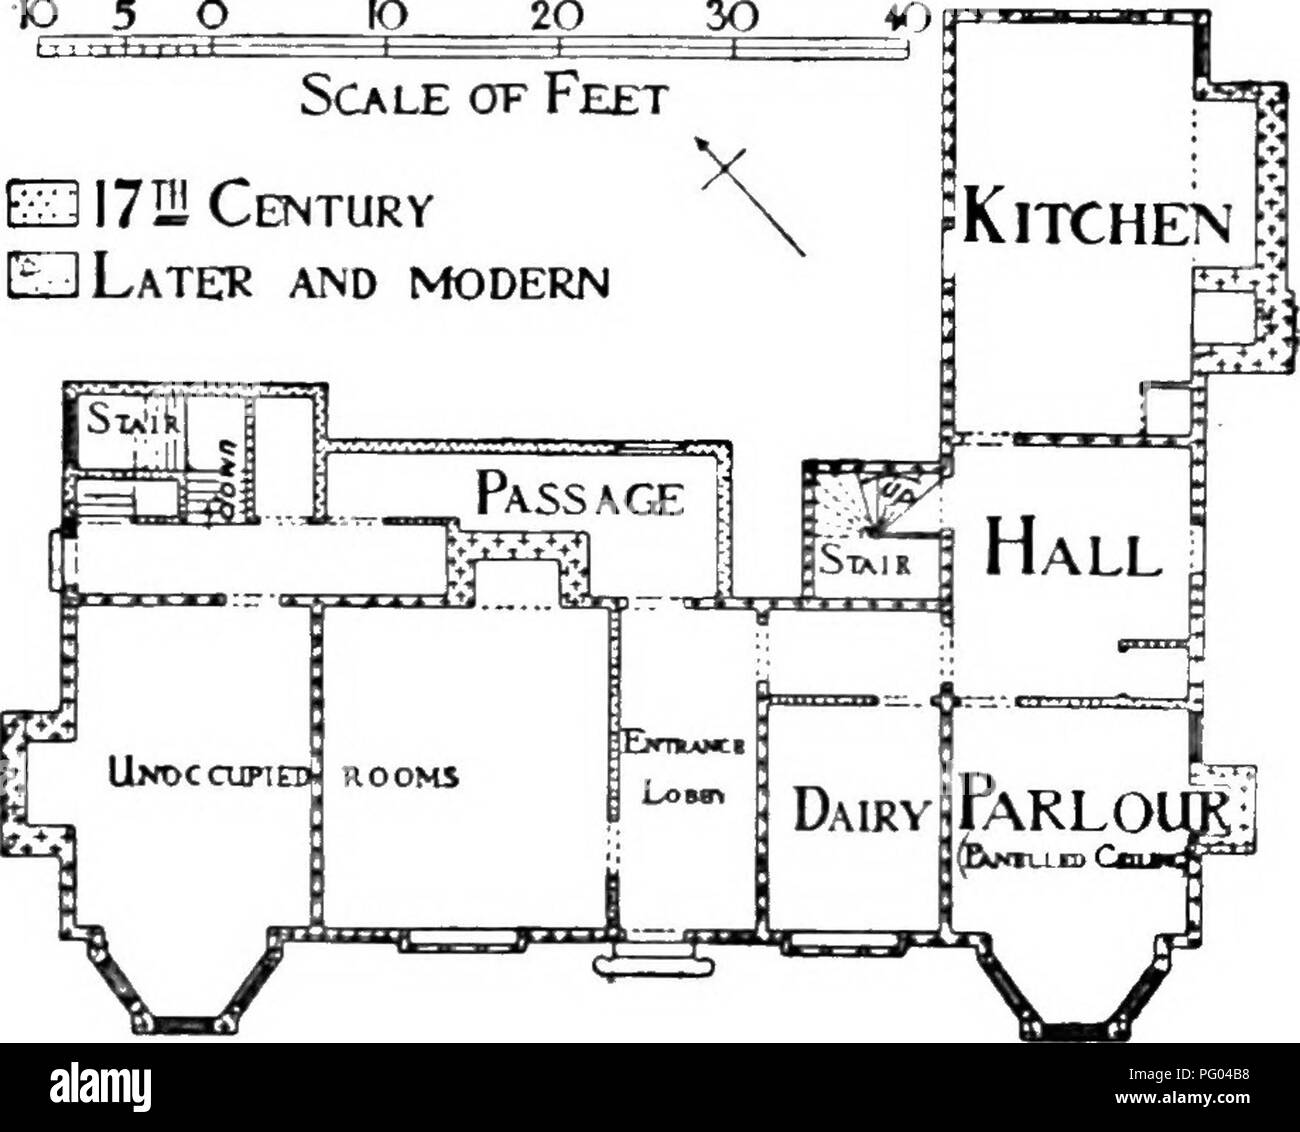 . The Victoria history of the county of Hertford. Natural history. Traces dormer windoiv) •10 5 Scale of Feet £3172! Century EDLateu and modern. Plan of thb Beeches, Brent Pelham the moulded ribs of which form a square and hexagonal pattern ; the ceiling goes into the bay window. The wide kitchen fireplace has a three-centred arch, partly blocked ; there is a small cellar under the kitchen. On the first floor is a stone fireplace with four-centred arch and frieze carved with roses and leaves ; it is of mid-17th-century date. The attic floor over the main block is one long gallery the whole len - Stock Image